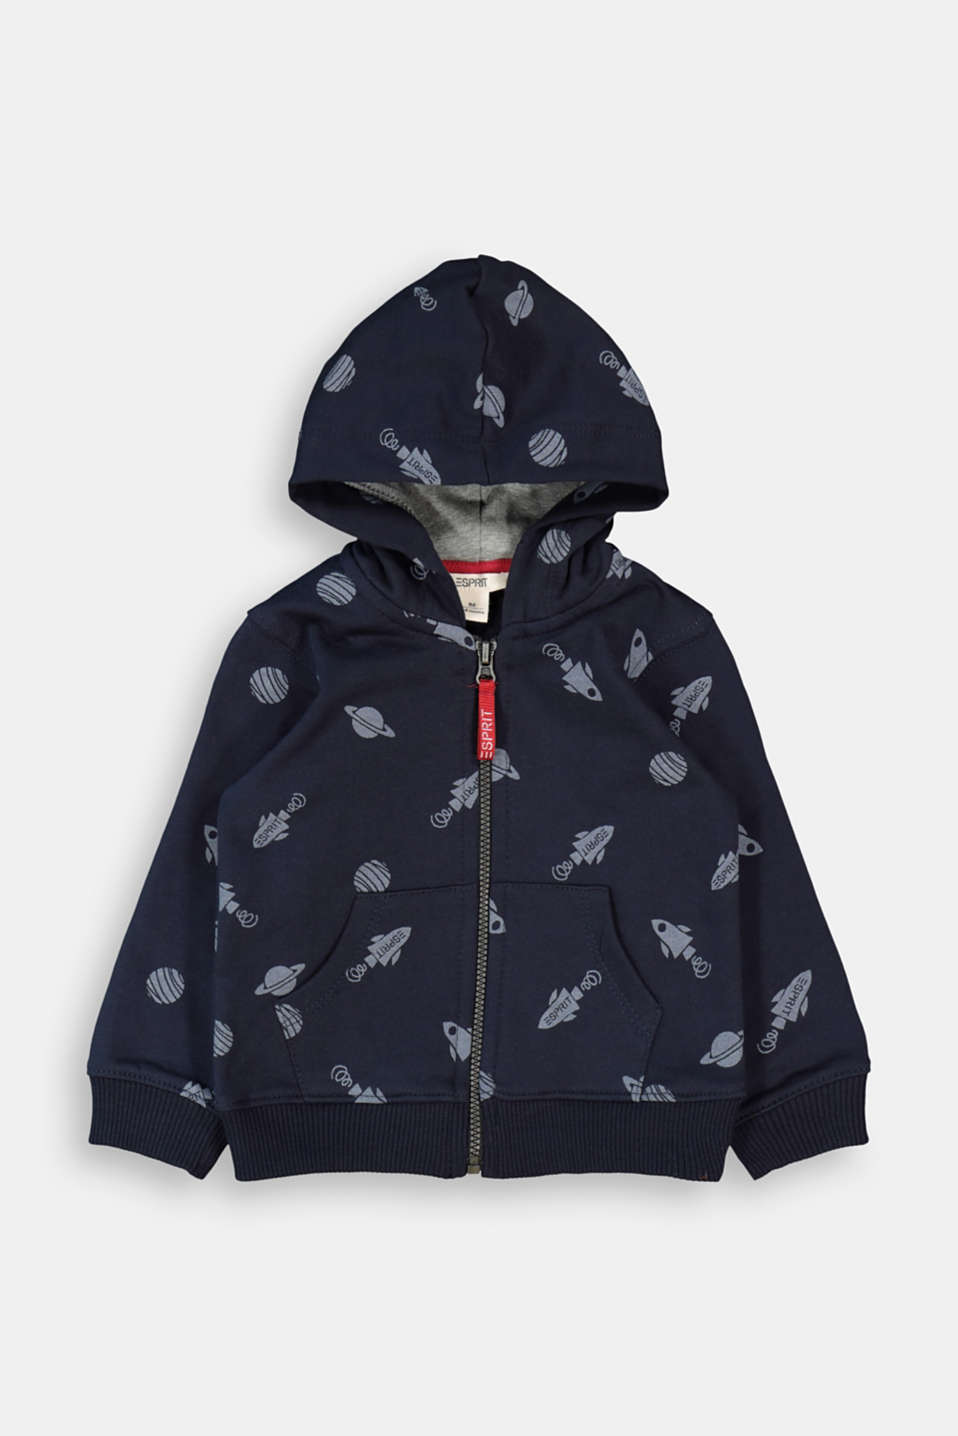 Esprit - Zip-up hoodie with print, 100% organic cotton